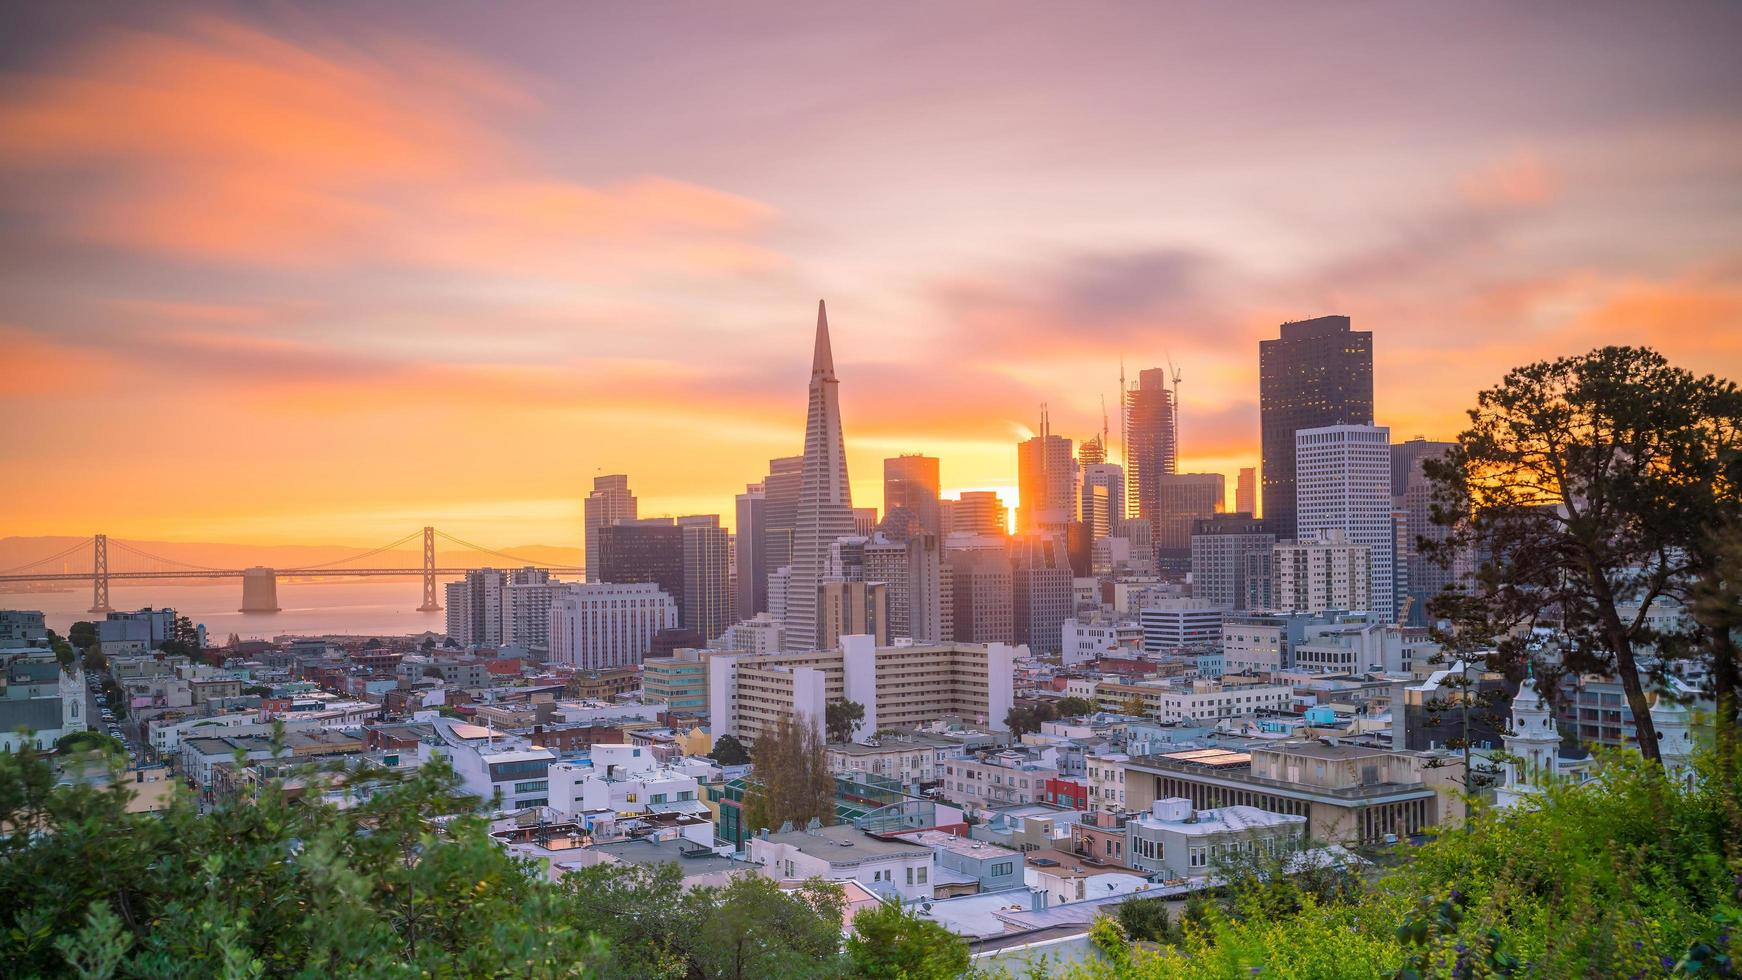 Sunset view of downtown San Francisco photo